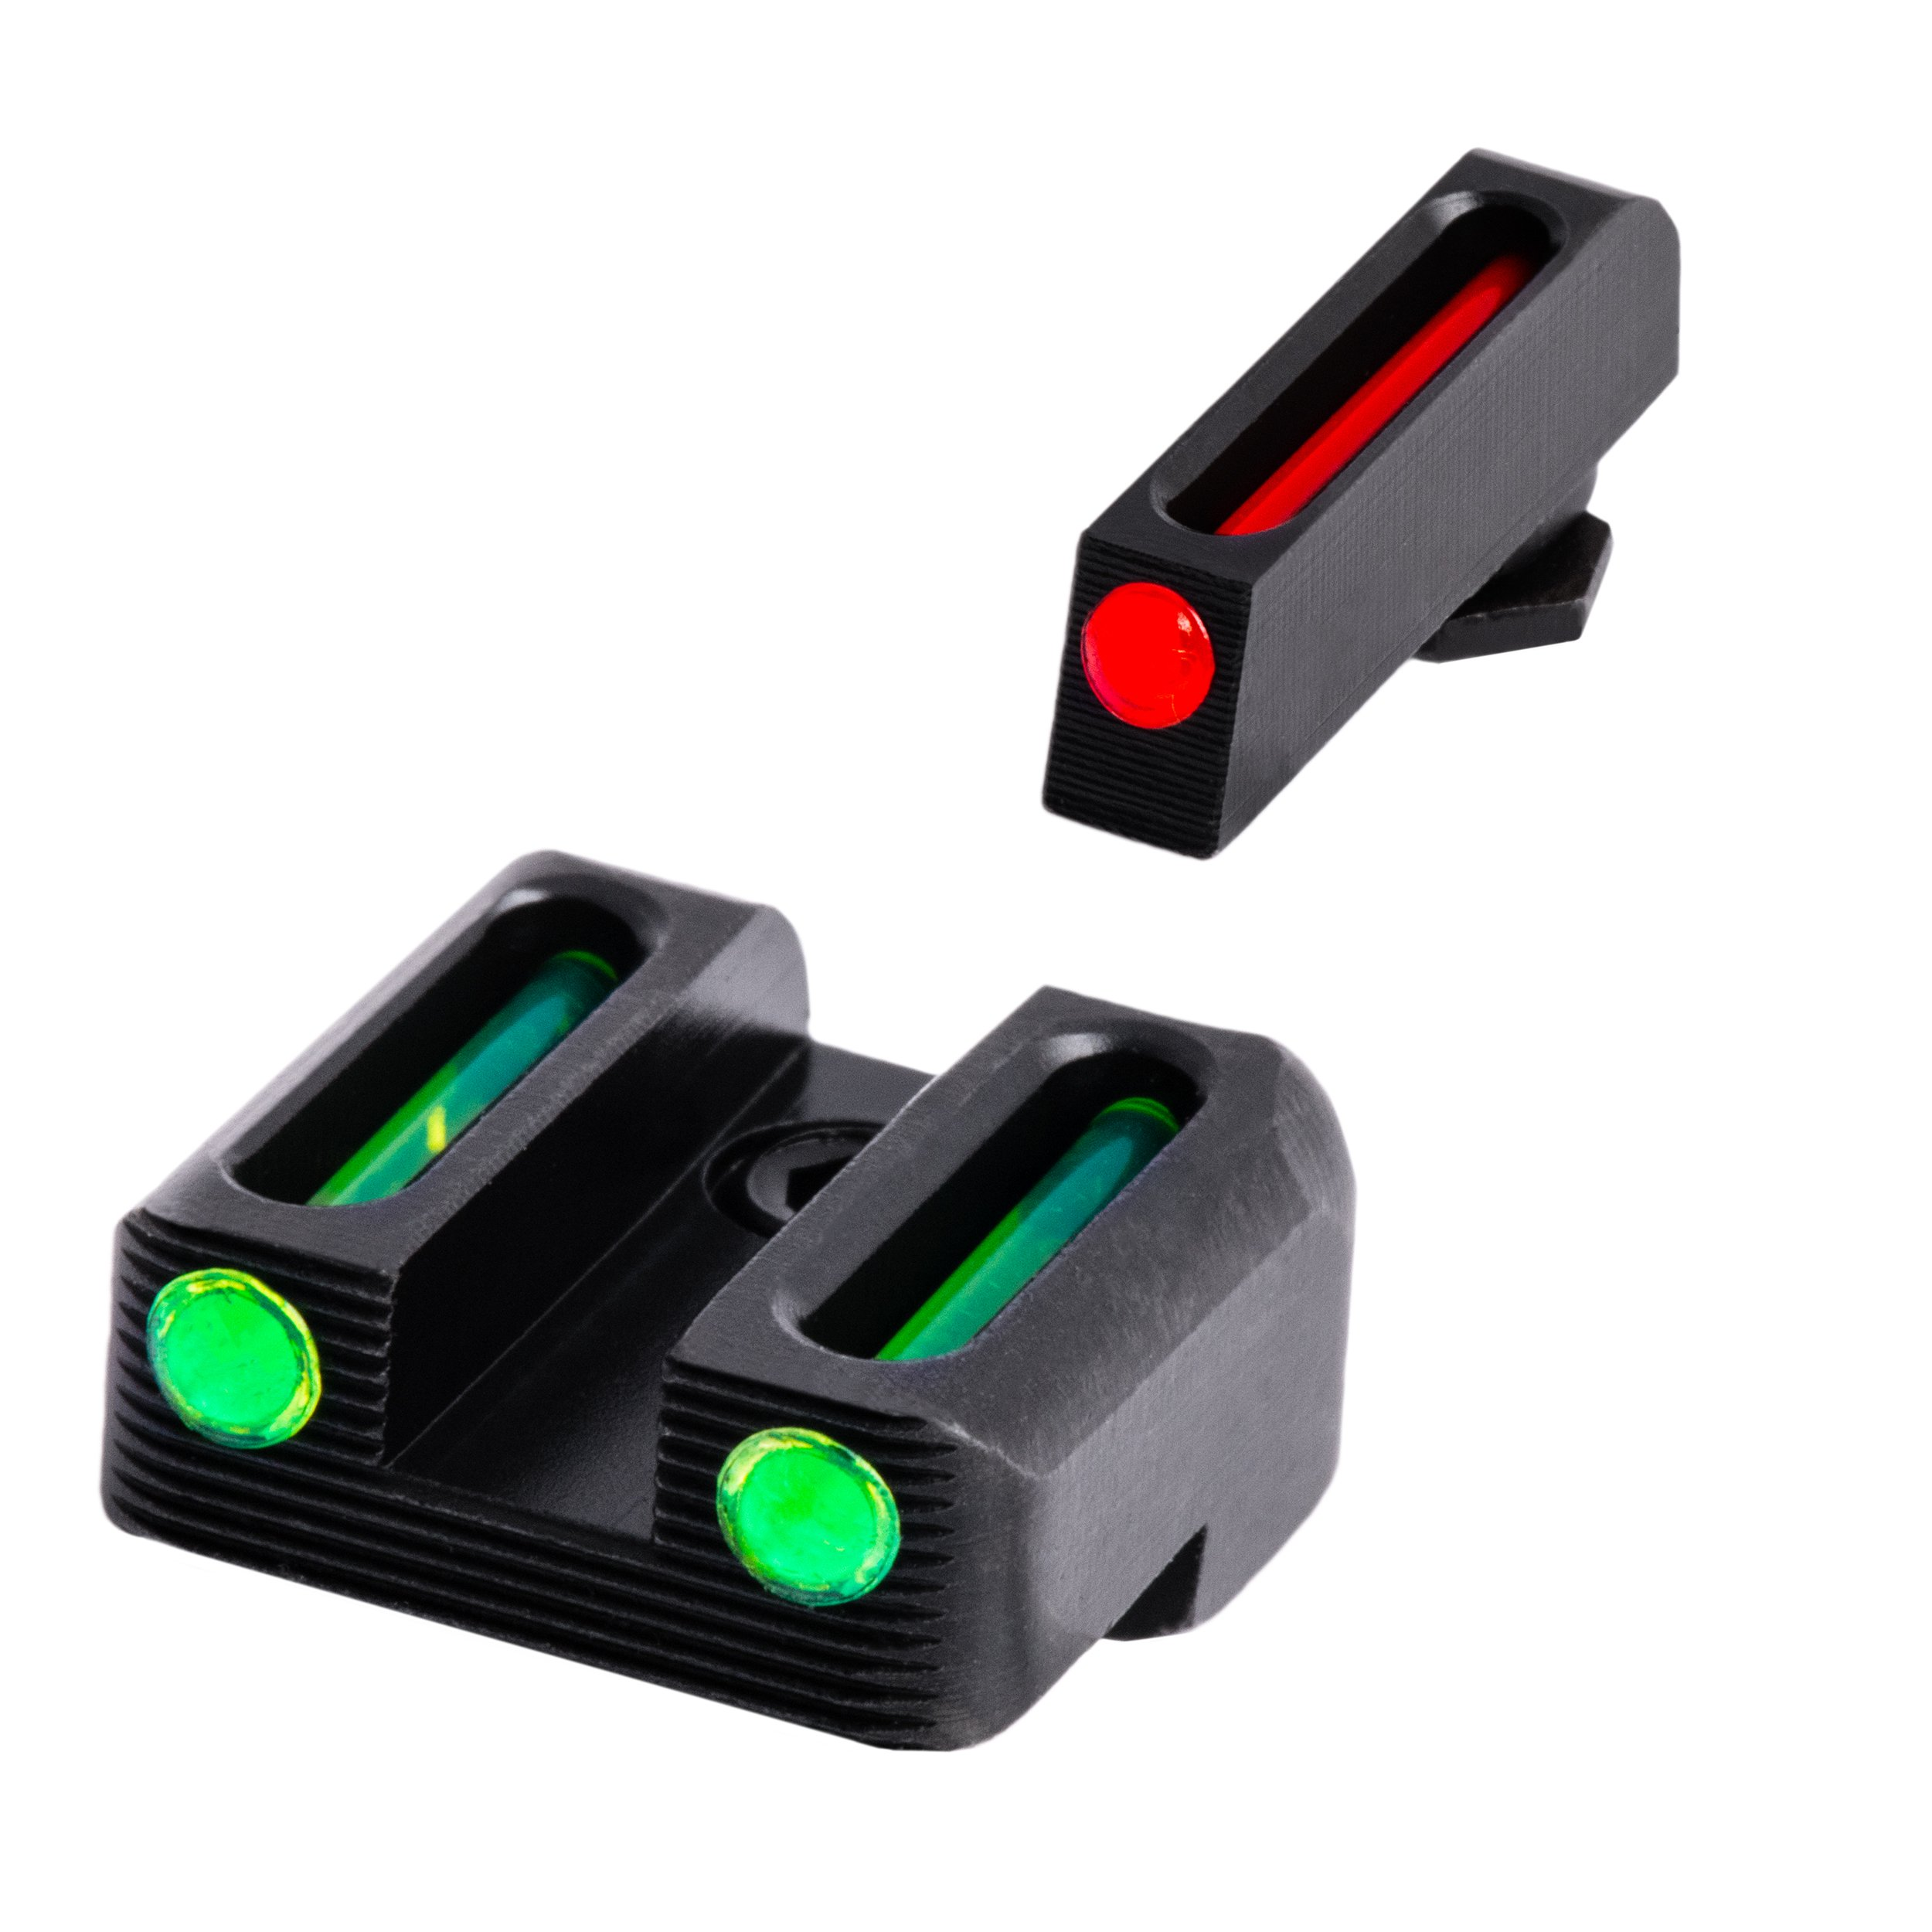 TRUGLO Fiber-Optic Front and Rear Handgun Sights for Glock Pistols, Glock 42, 43